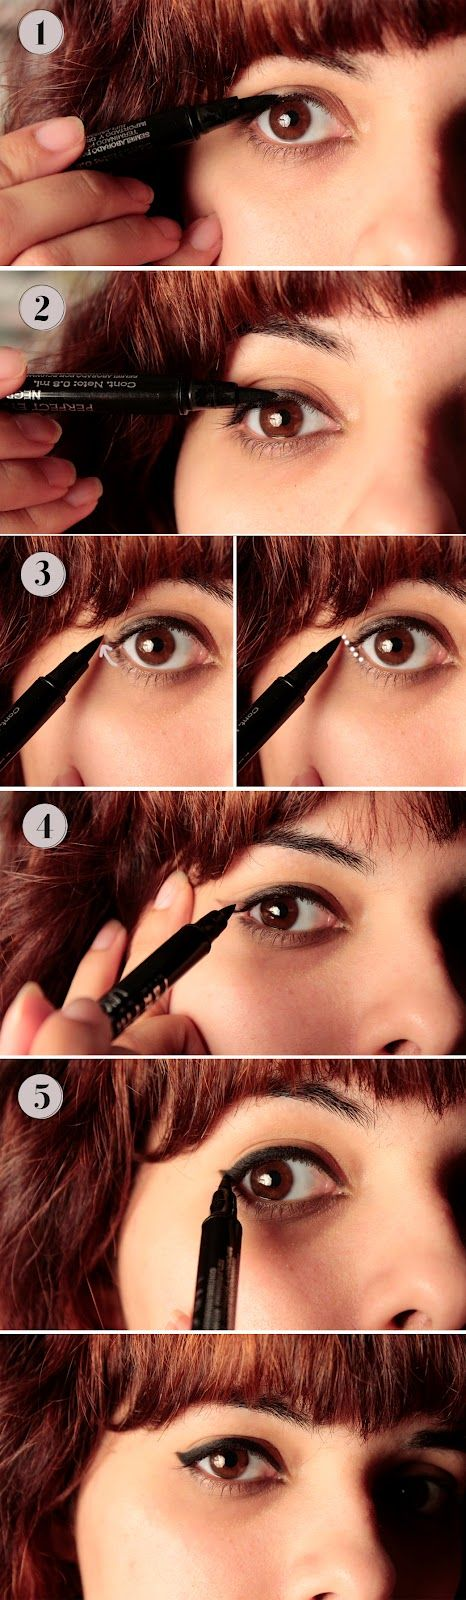 The Tiny Adventures of Kiri: How to Pull a Perfect Eyeline Flick {22 days}